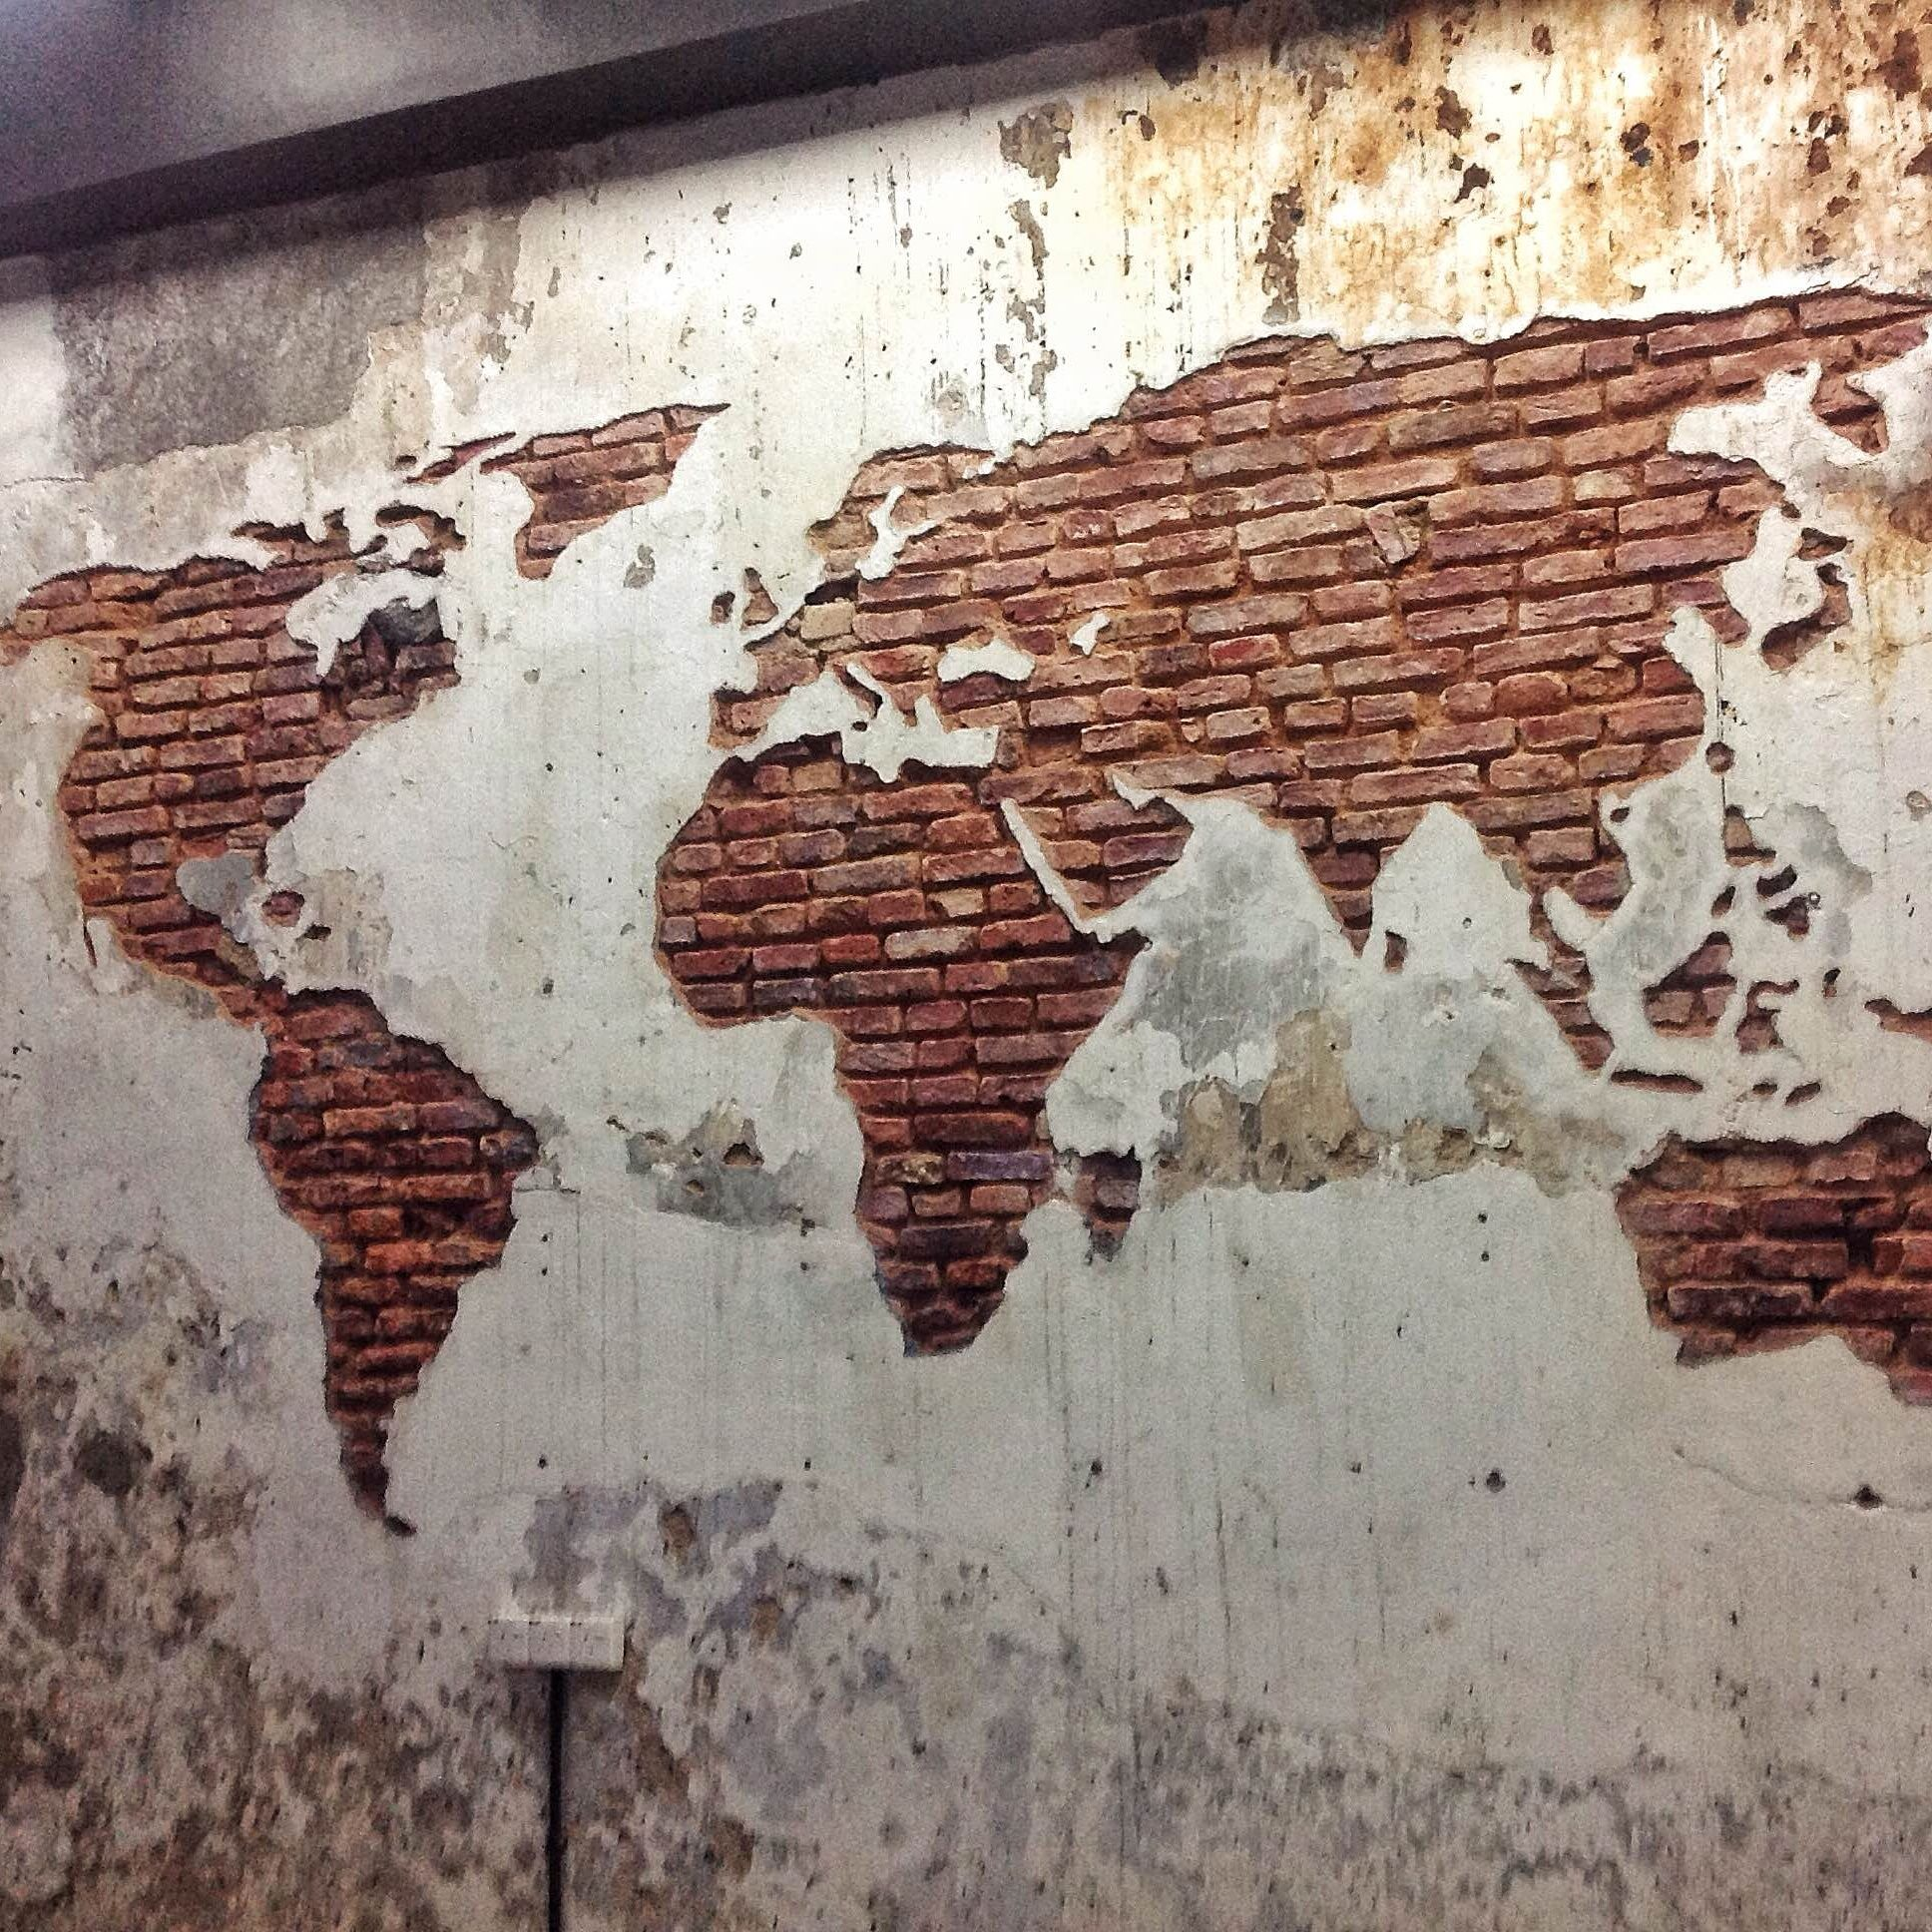 Cool chipped plaster mural pinteres world map mural in malaysia penang by jurgis tarabilda and gintautas grusas gumiabroncs Image collections